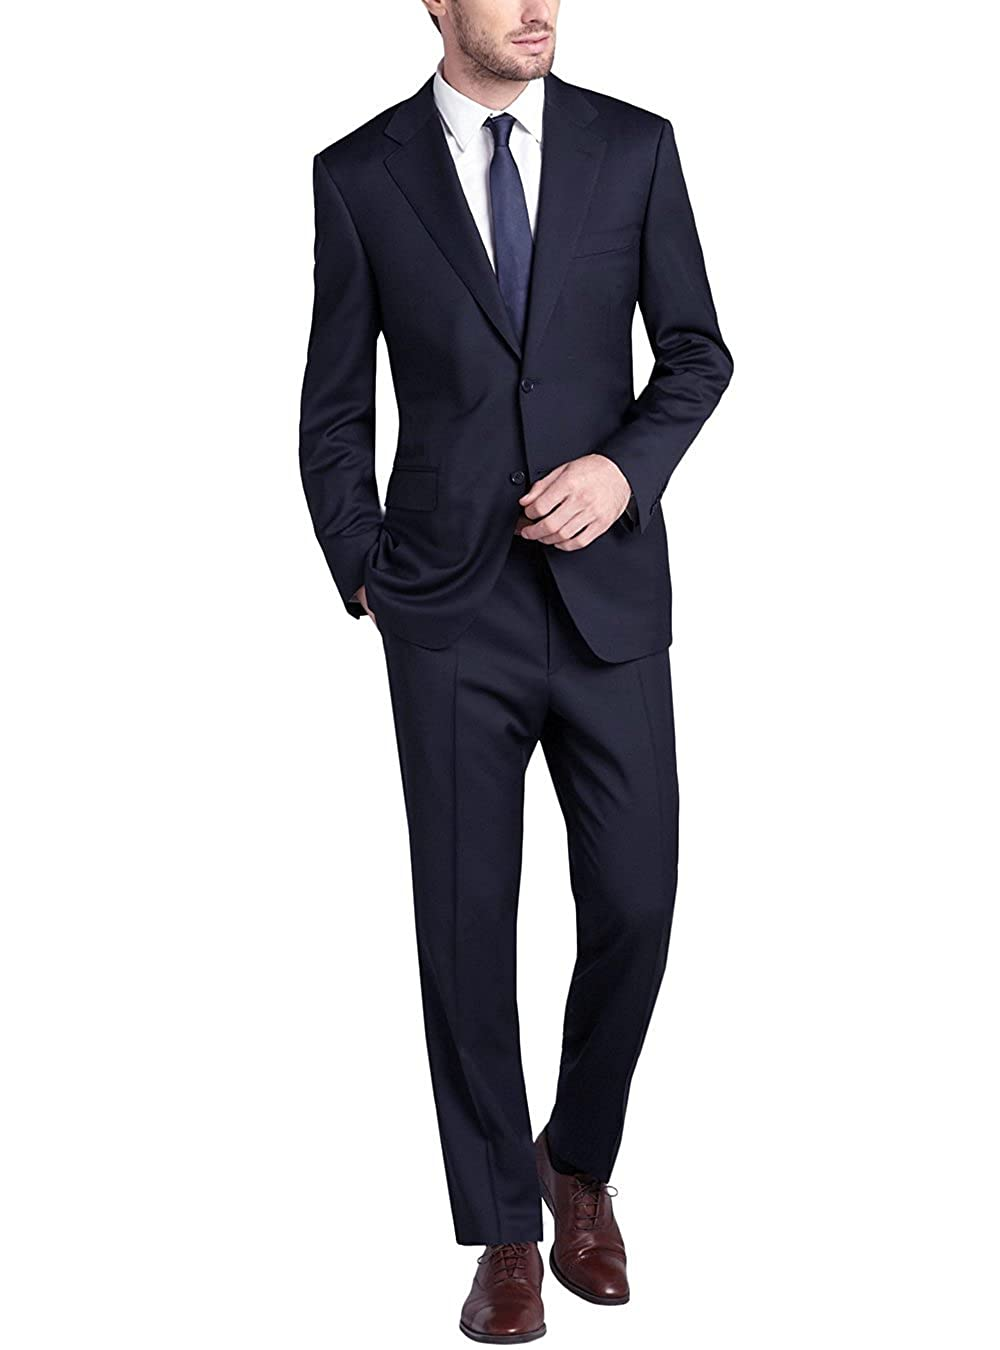 Gino Valentino Men's Two Button Side vents Jacket 2 Piece Modern Suit